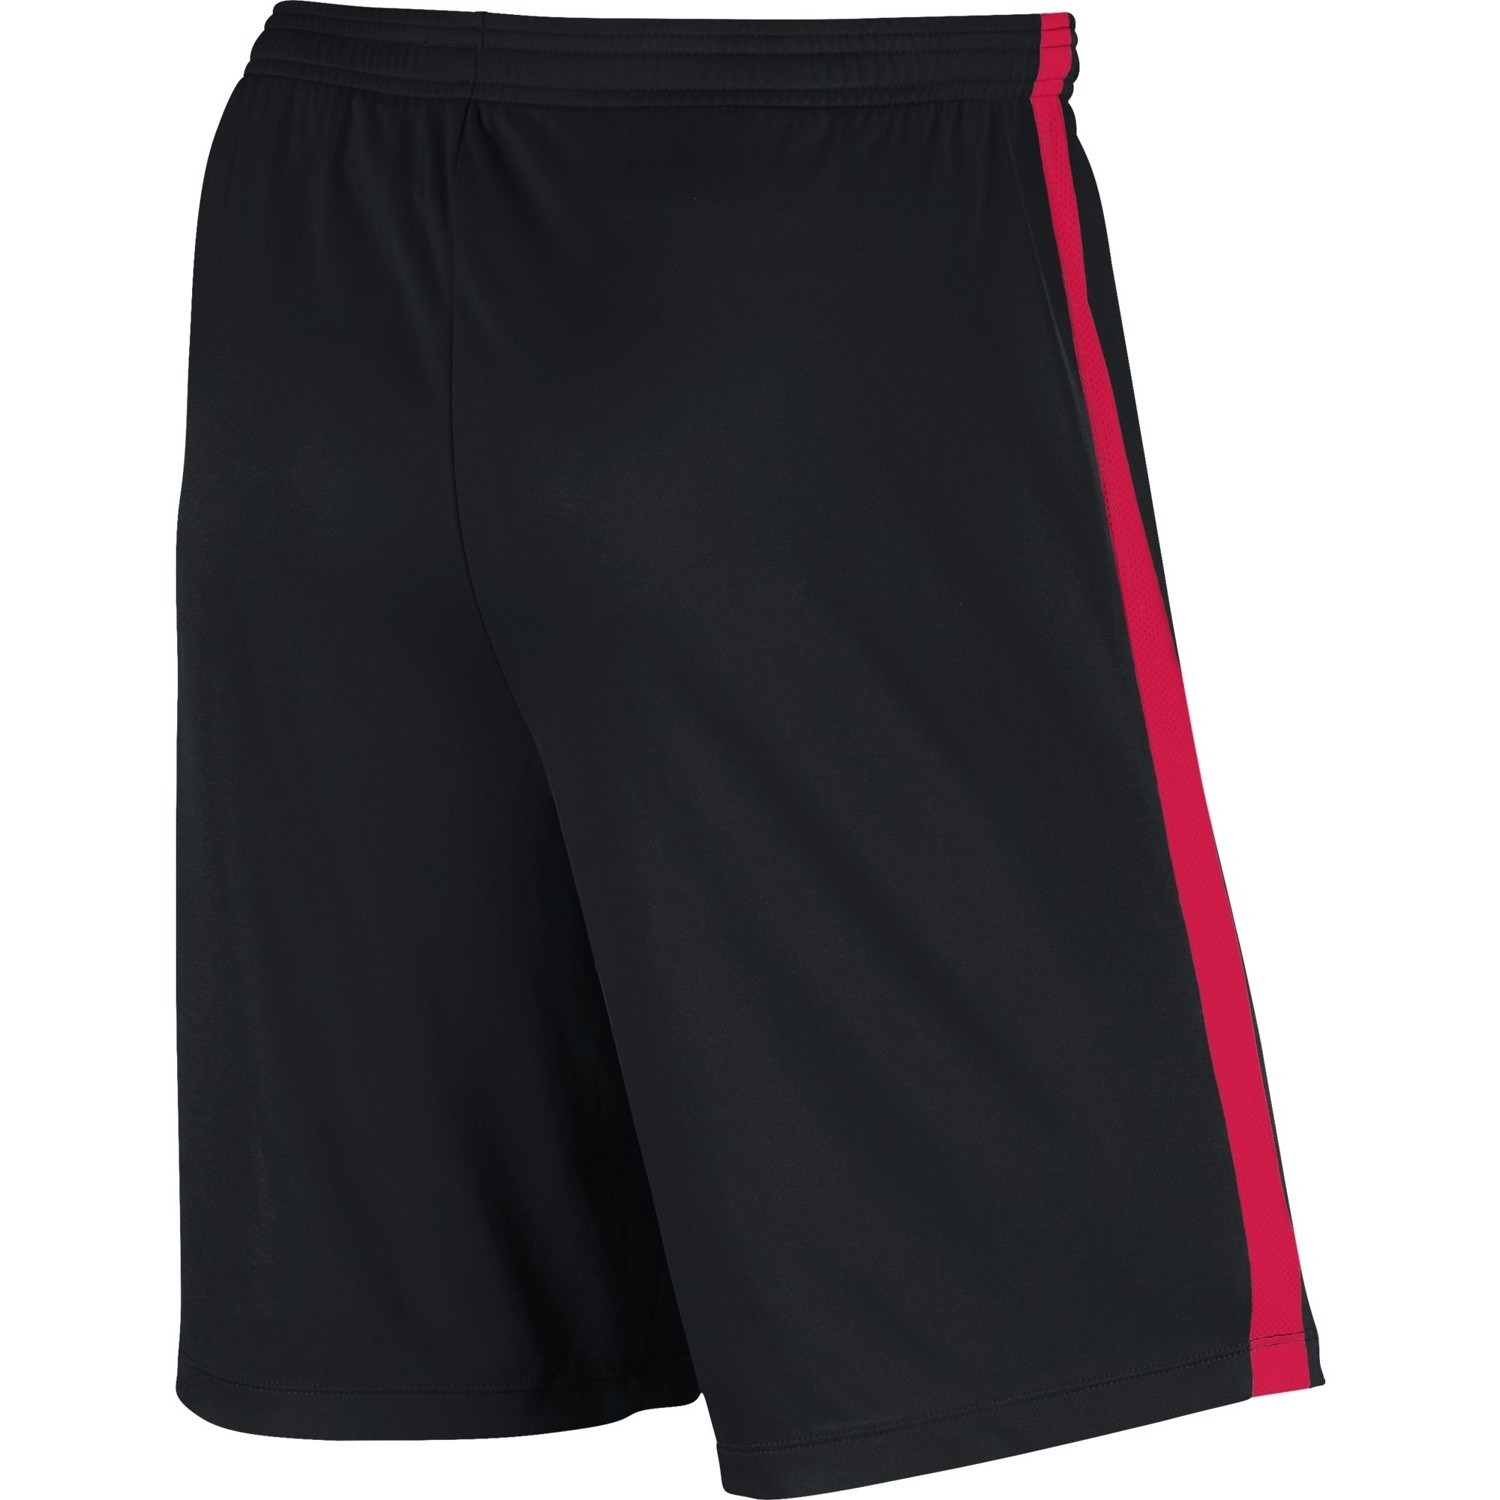 Afbeelding van Nike Dri-FIT Academy Short Black Siren Red